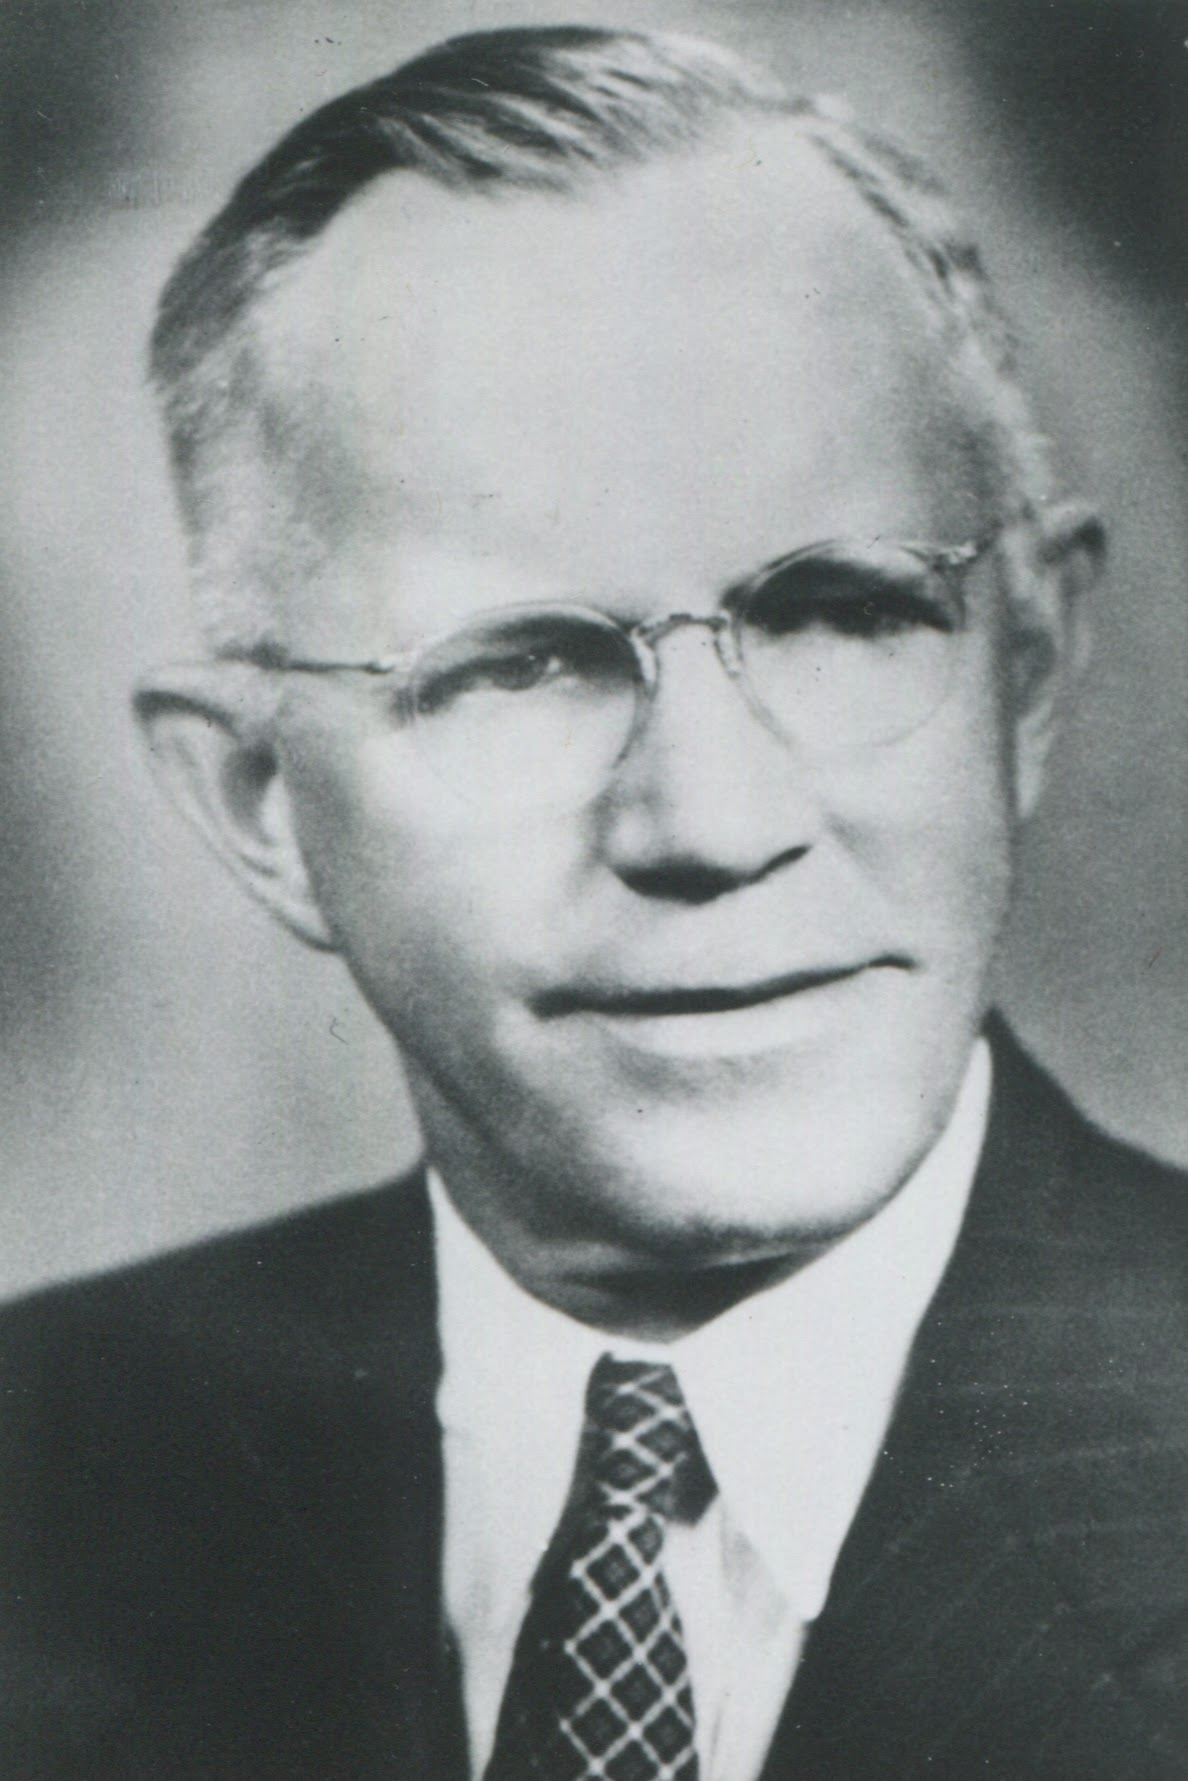 O.H. Lachenmeyer